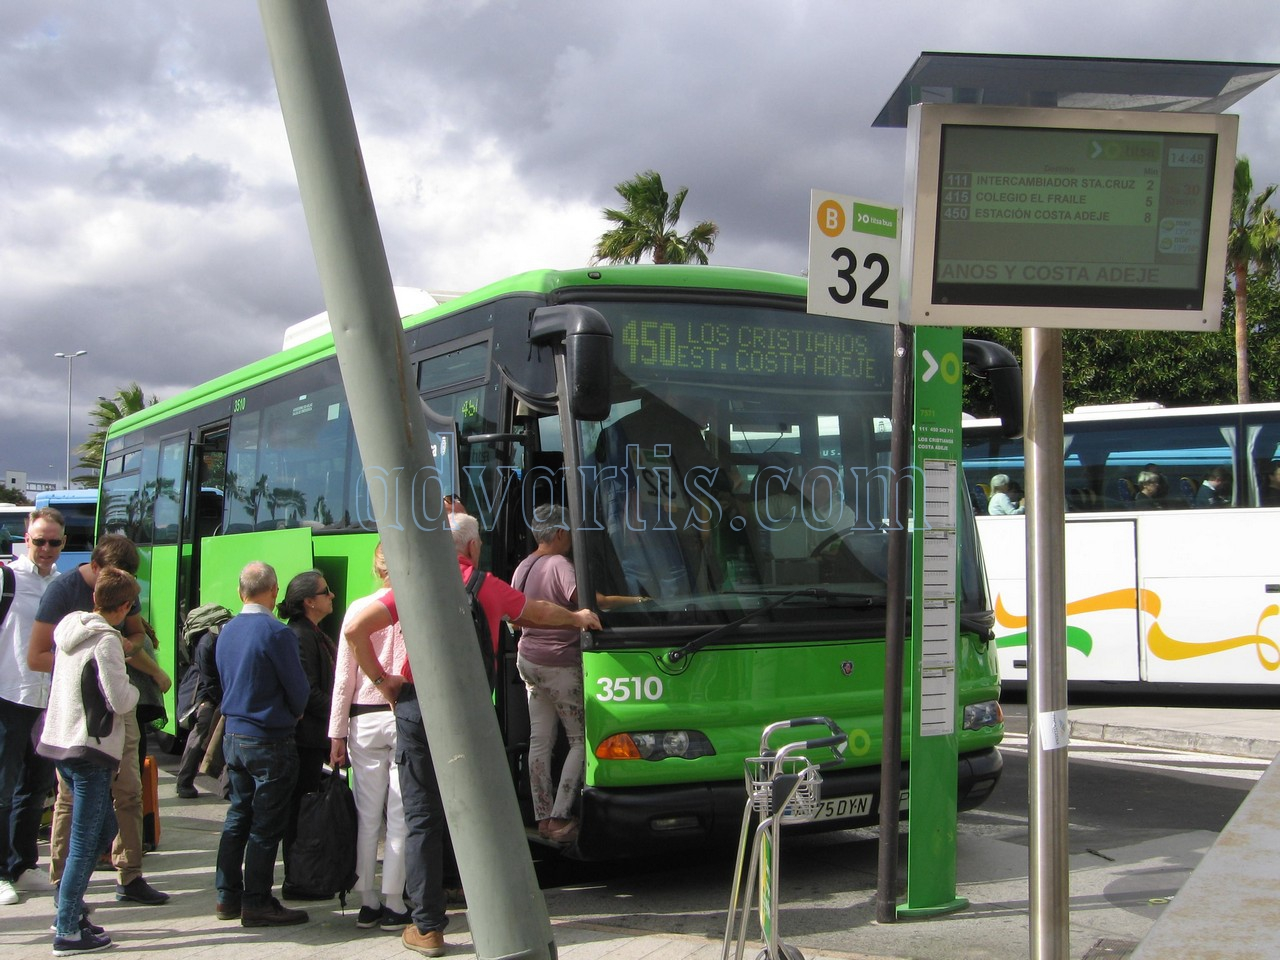 Tenerife bus in Tenerife South airport